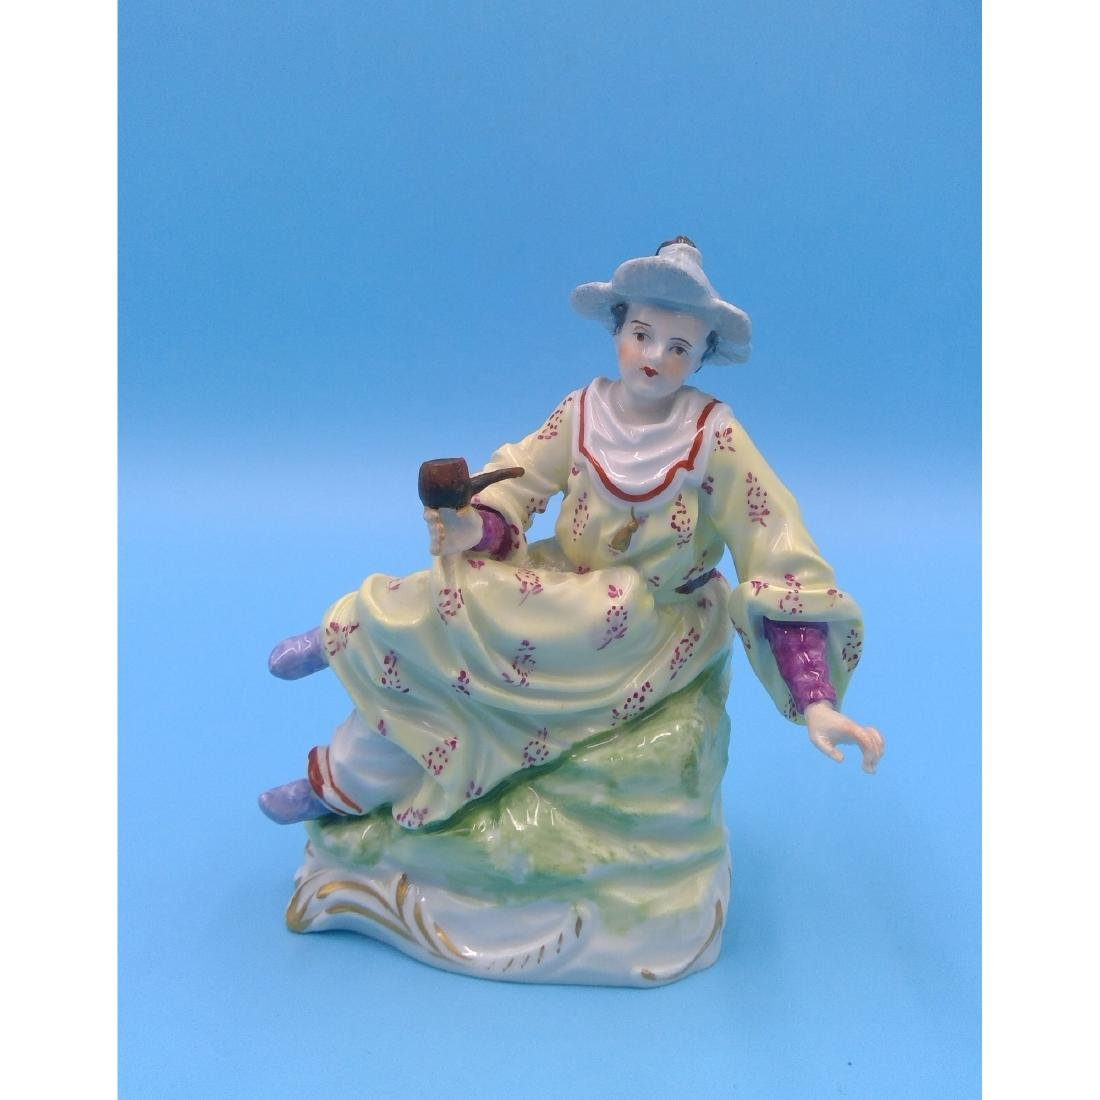 DRESDEN GERMAN PORCELAIN FIGURINE LADY W PIPE